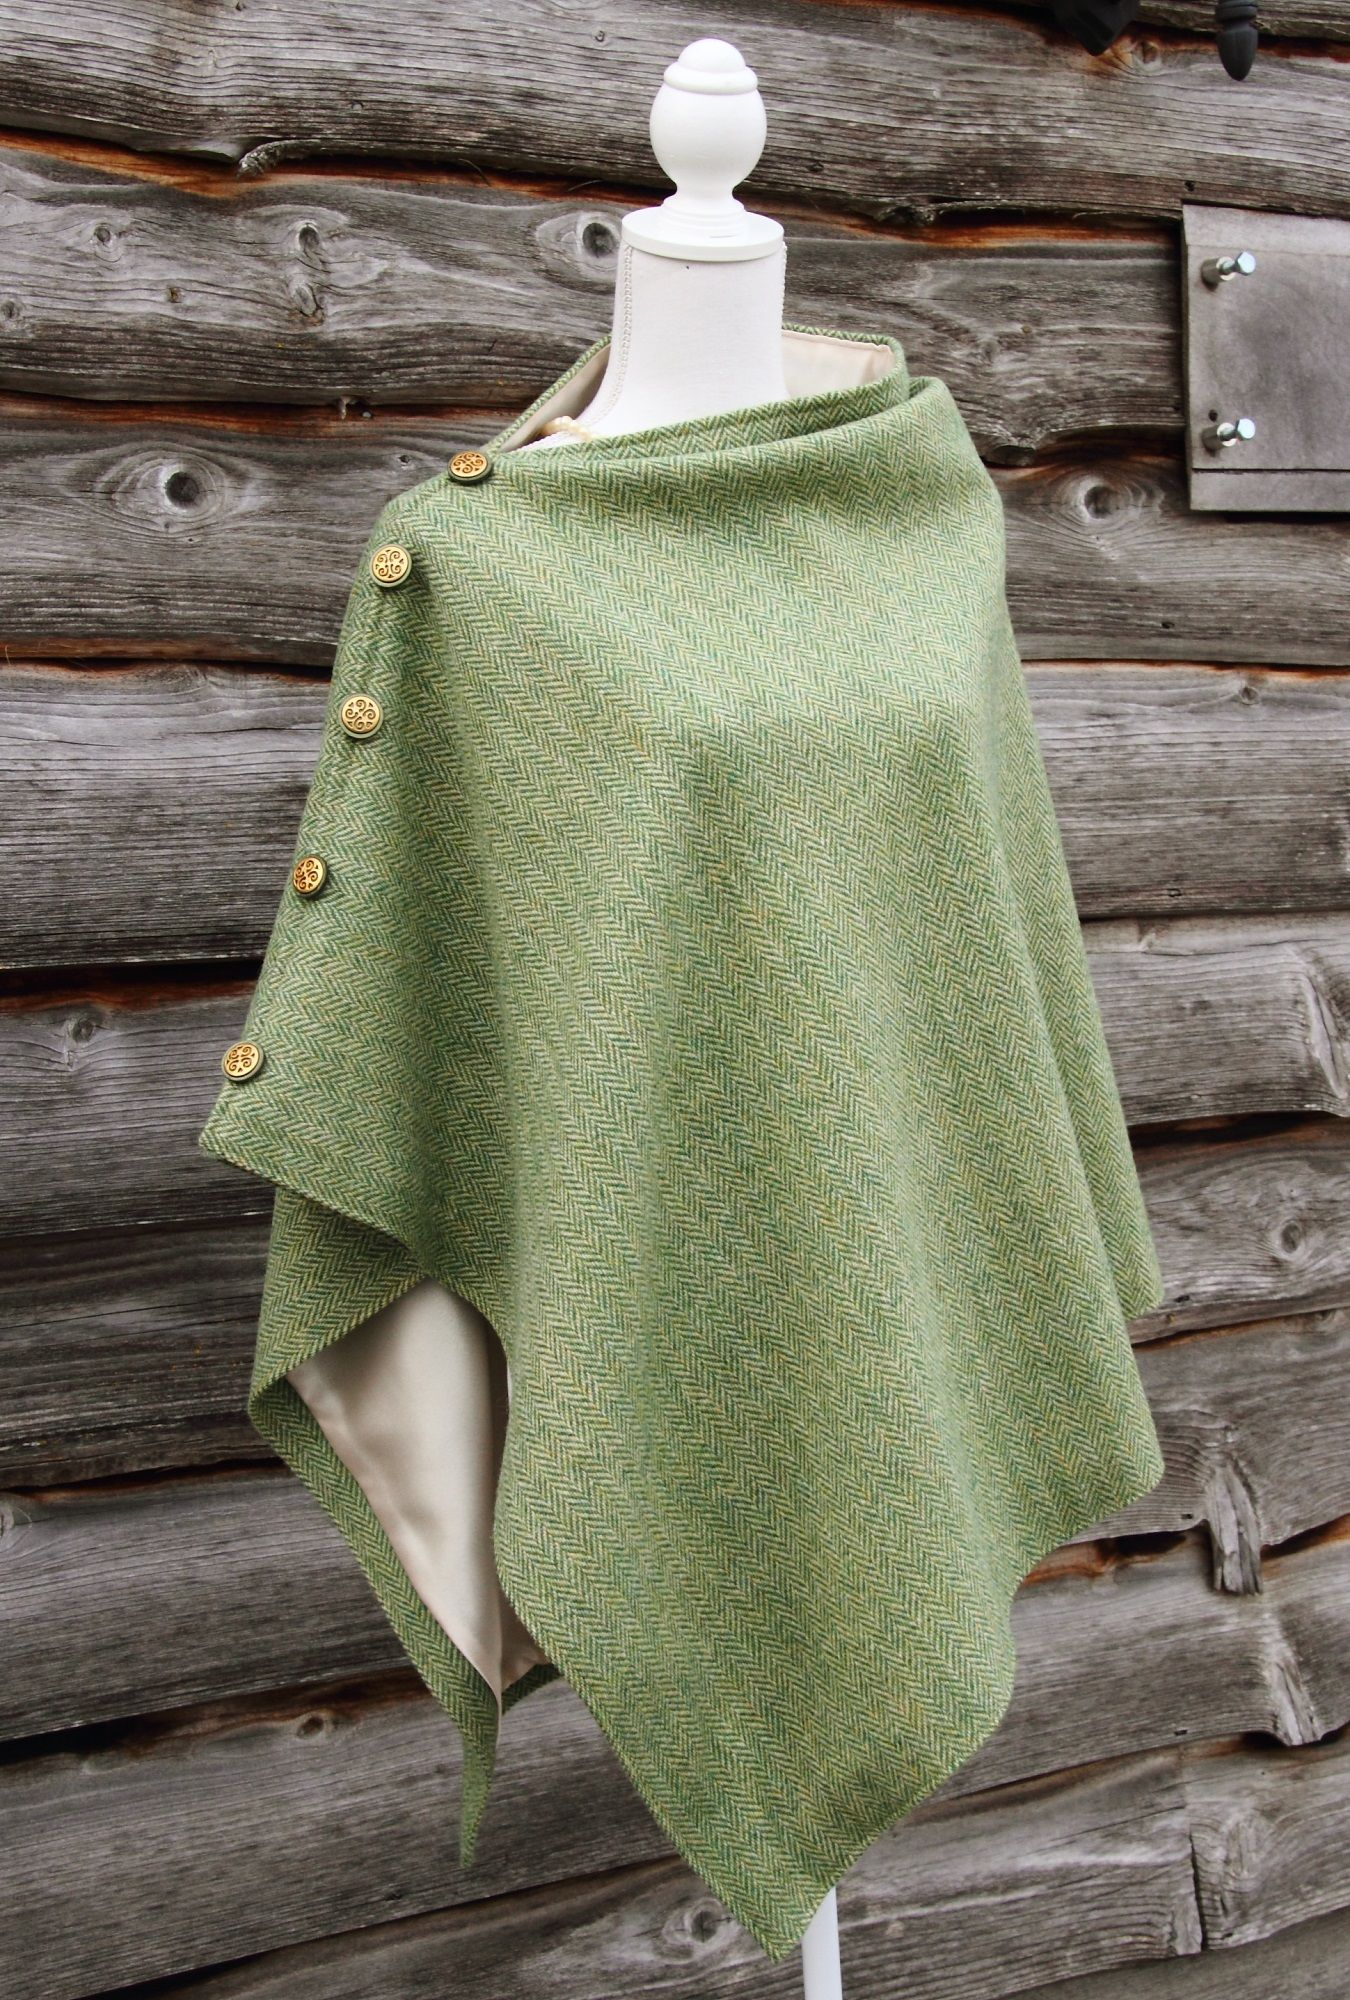 57bcb259b08c56 harris tweed cape - Google Search | Tweeds | Sewing clothes, Harris ...